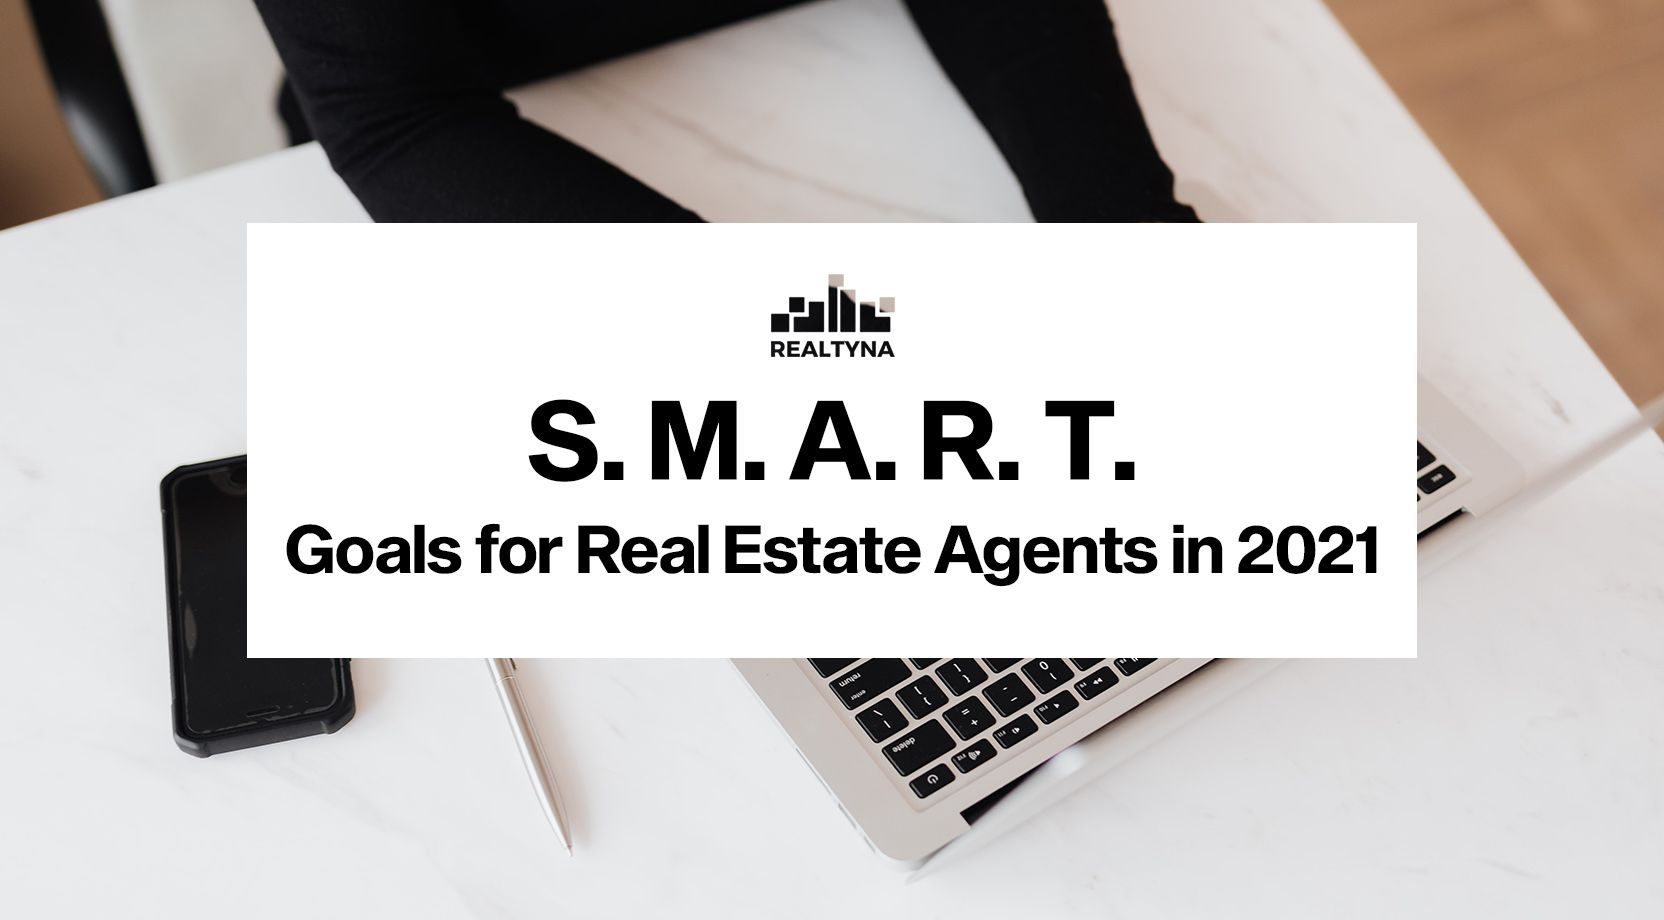 S.M.A.R.T. Goals for Real Estate Agents in 2021